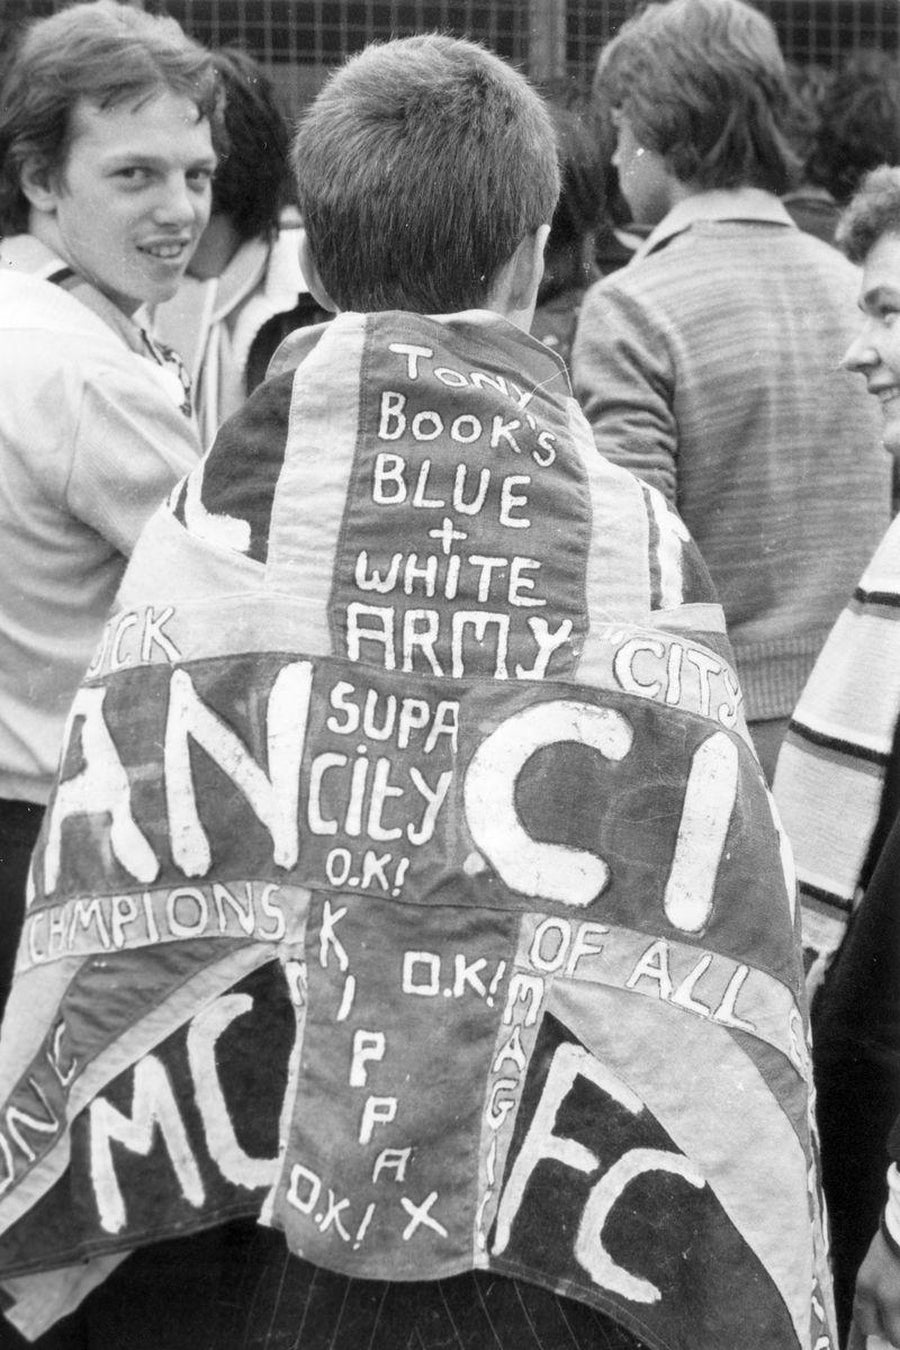 Tony Book's Blue and White Army by Iain S. P. Reid, c. 1977